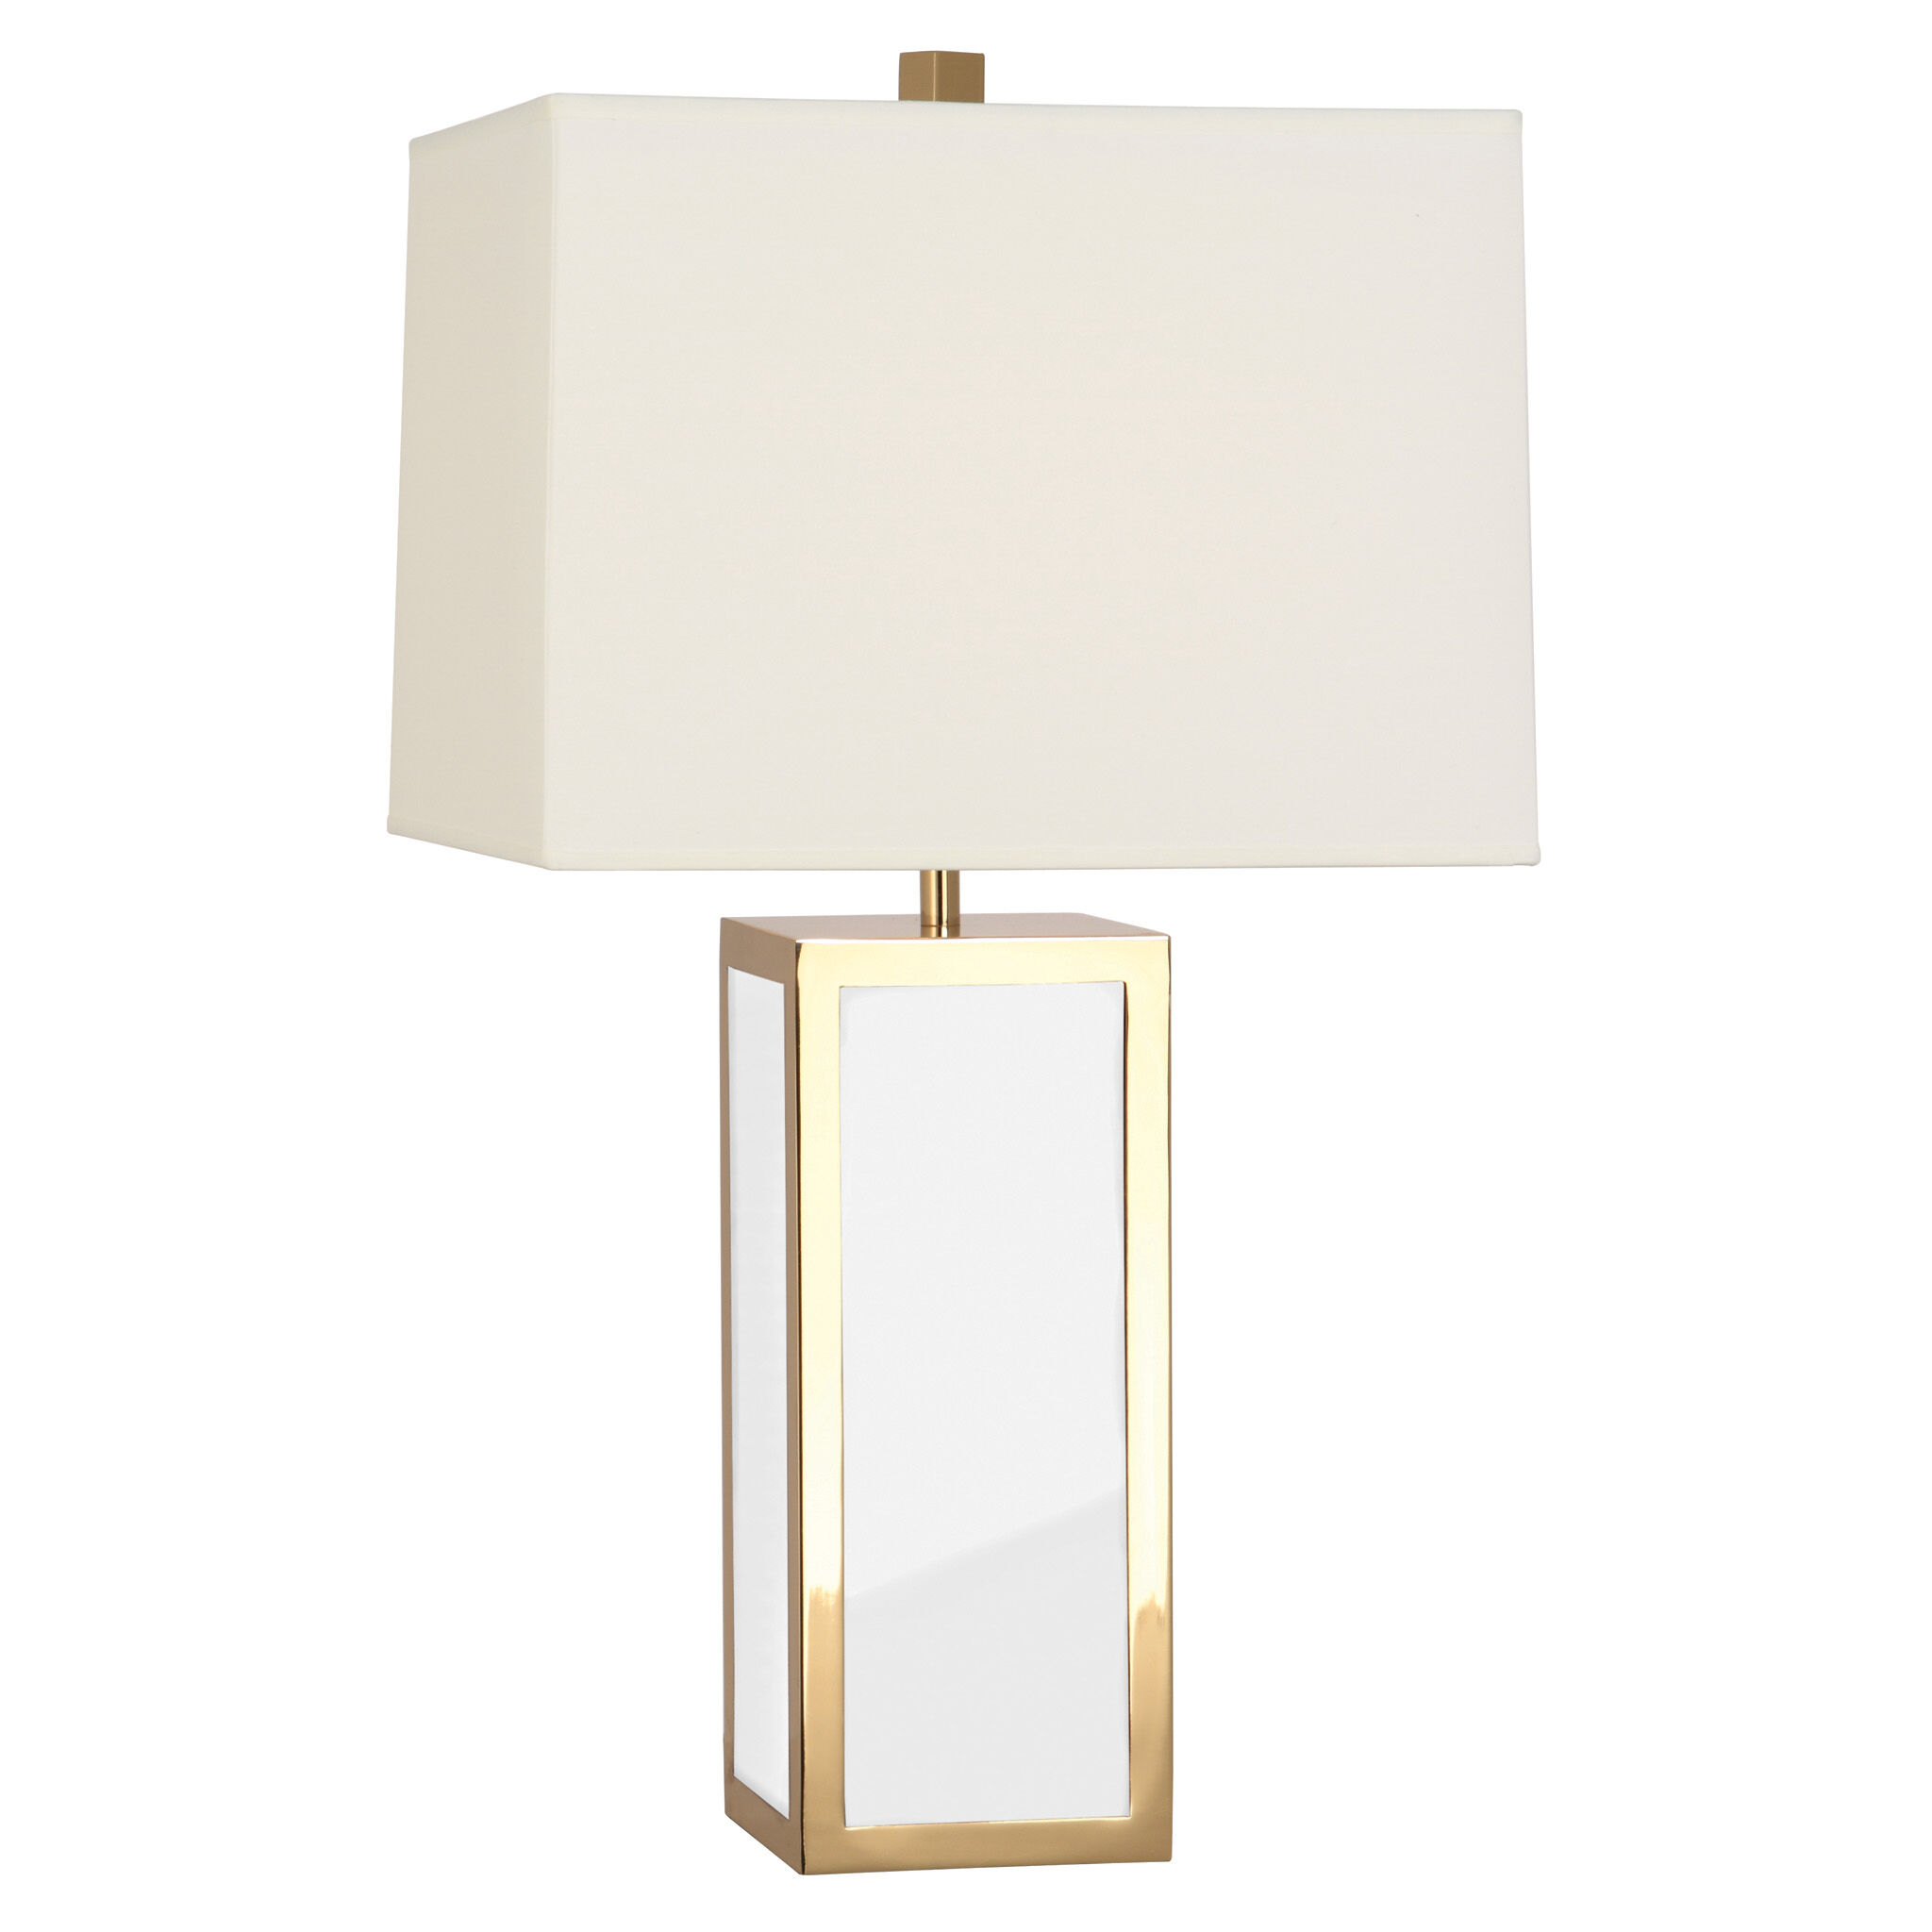 Captivating Table Lamps   Barcelona Table Lamp